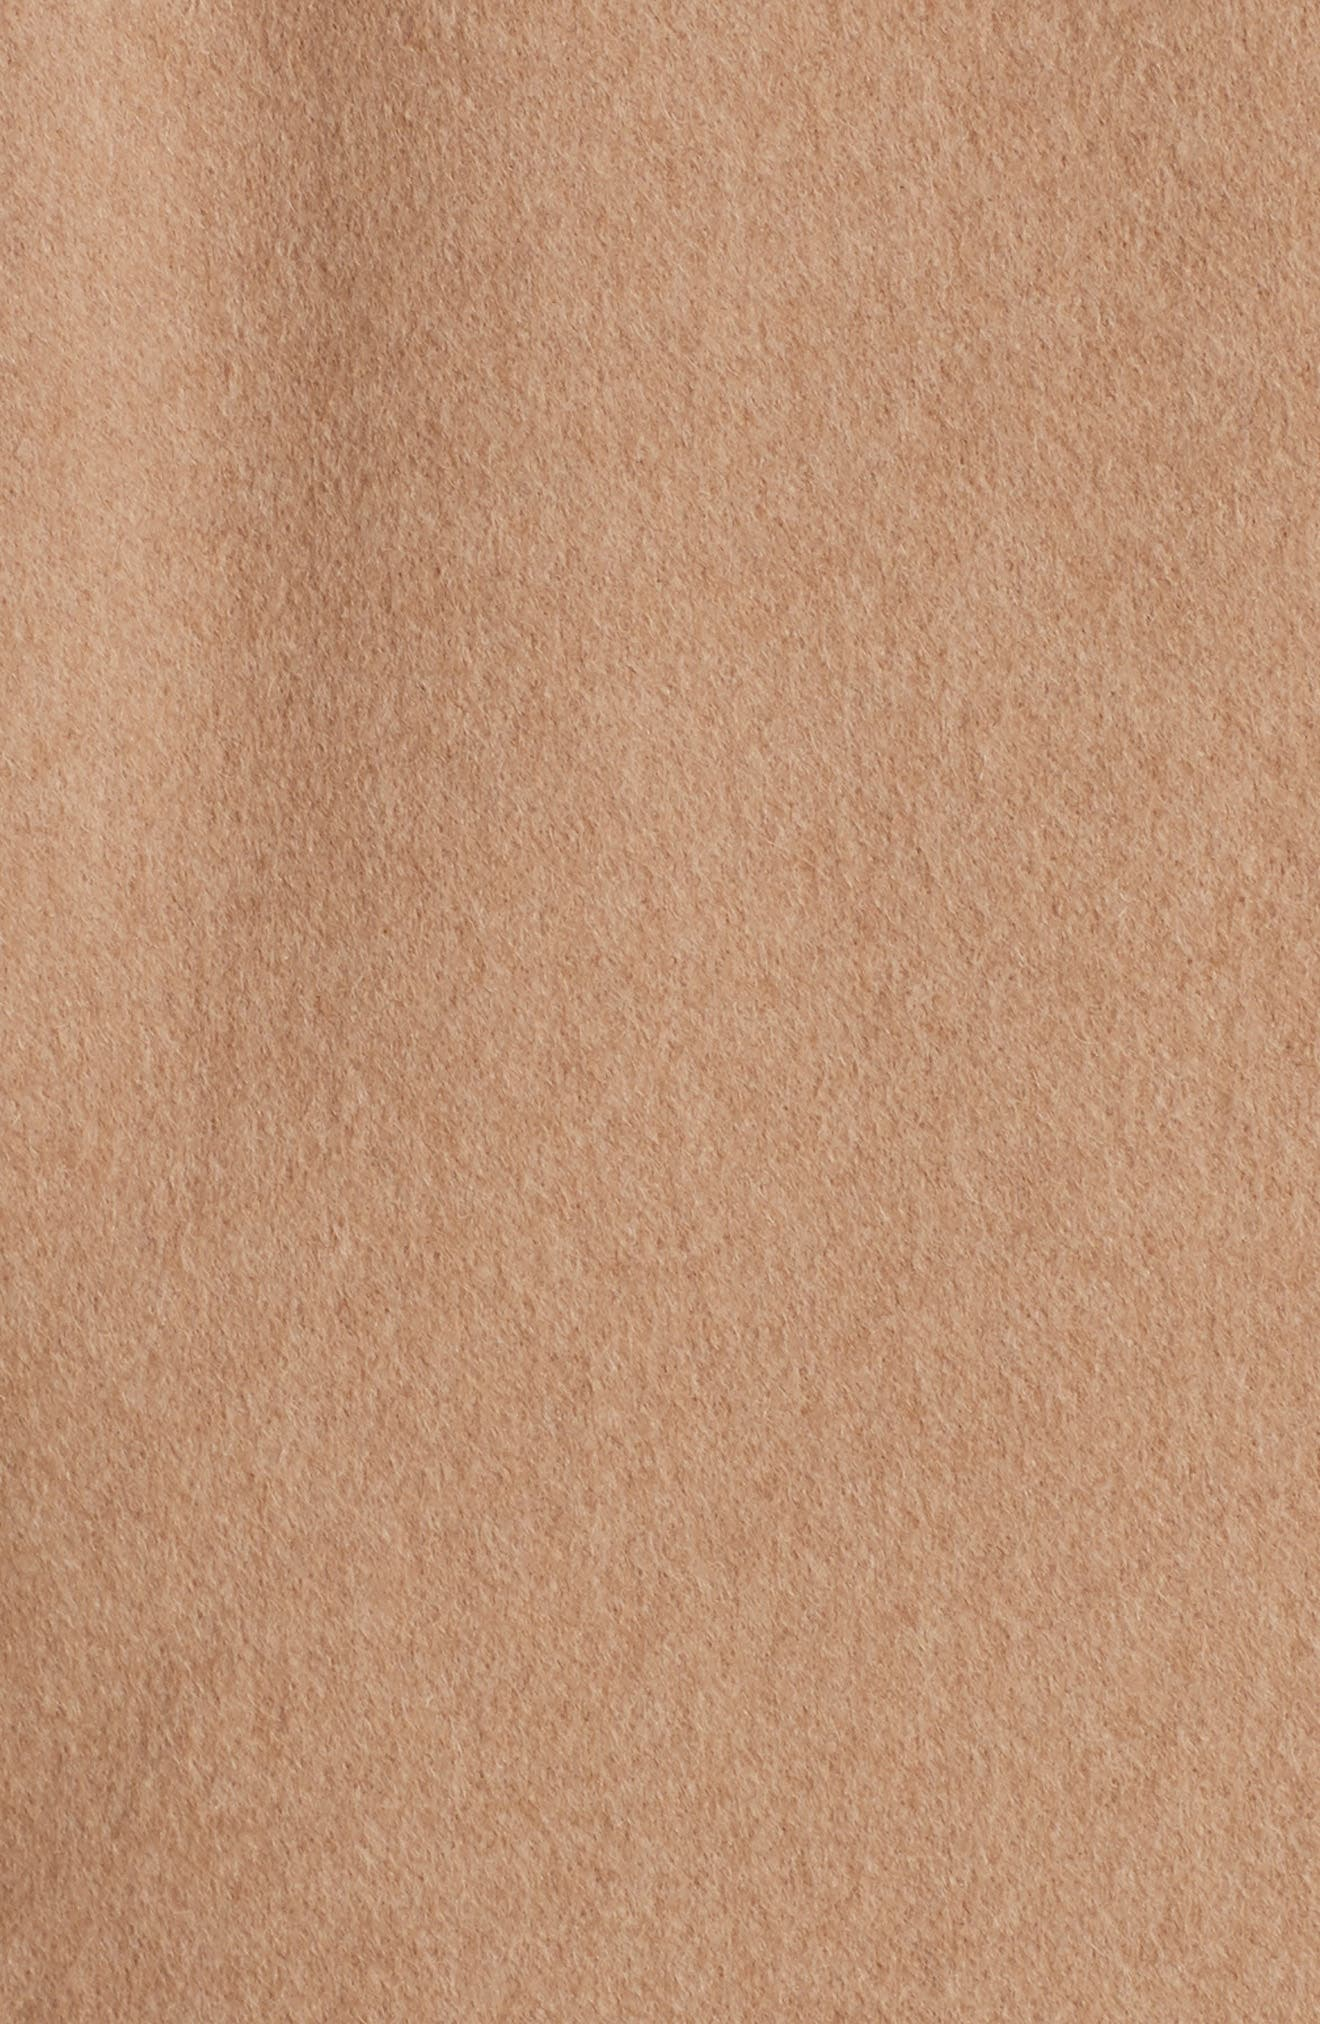 Panteon Camel Hair Jacket,                             Alternate thumbnail 6, color,                             232